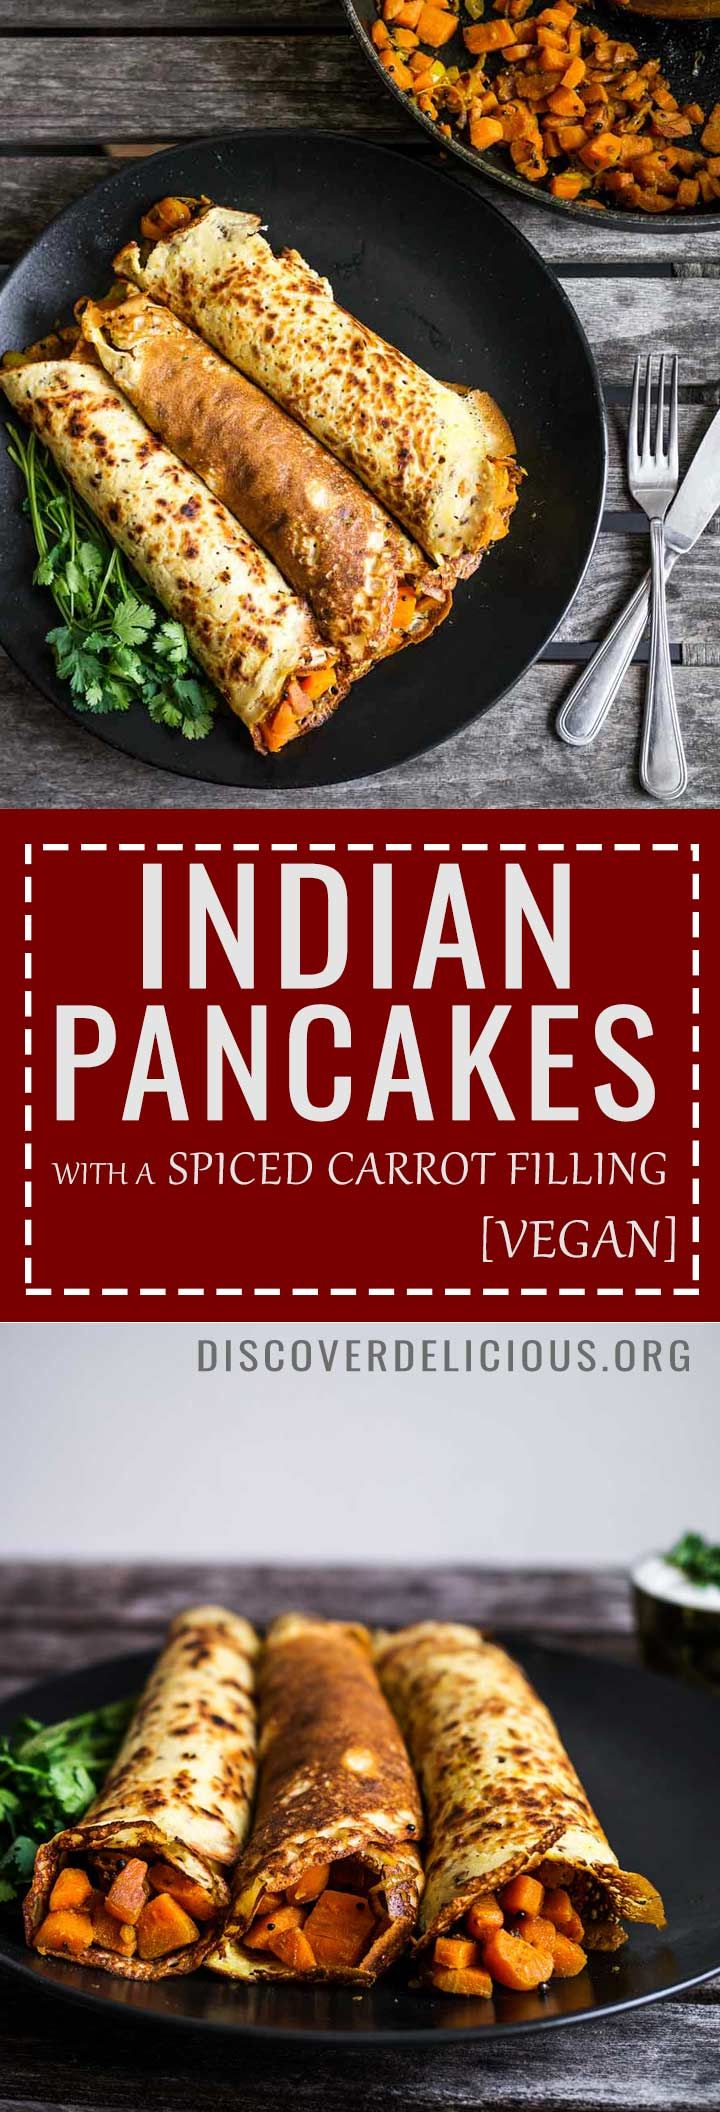 Indian Savoury Pancakes w Spiced Carrot Filling | Discover Delicious | www.discoverdelicious.org | Vegan Food Blog